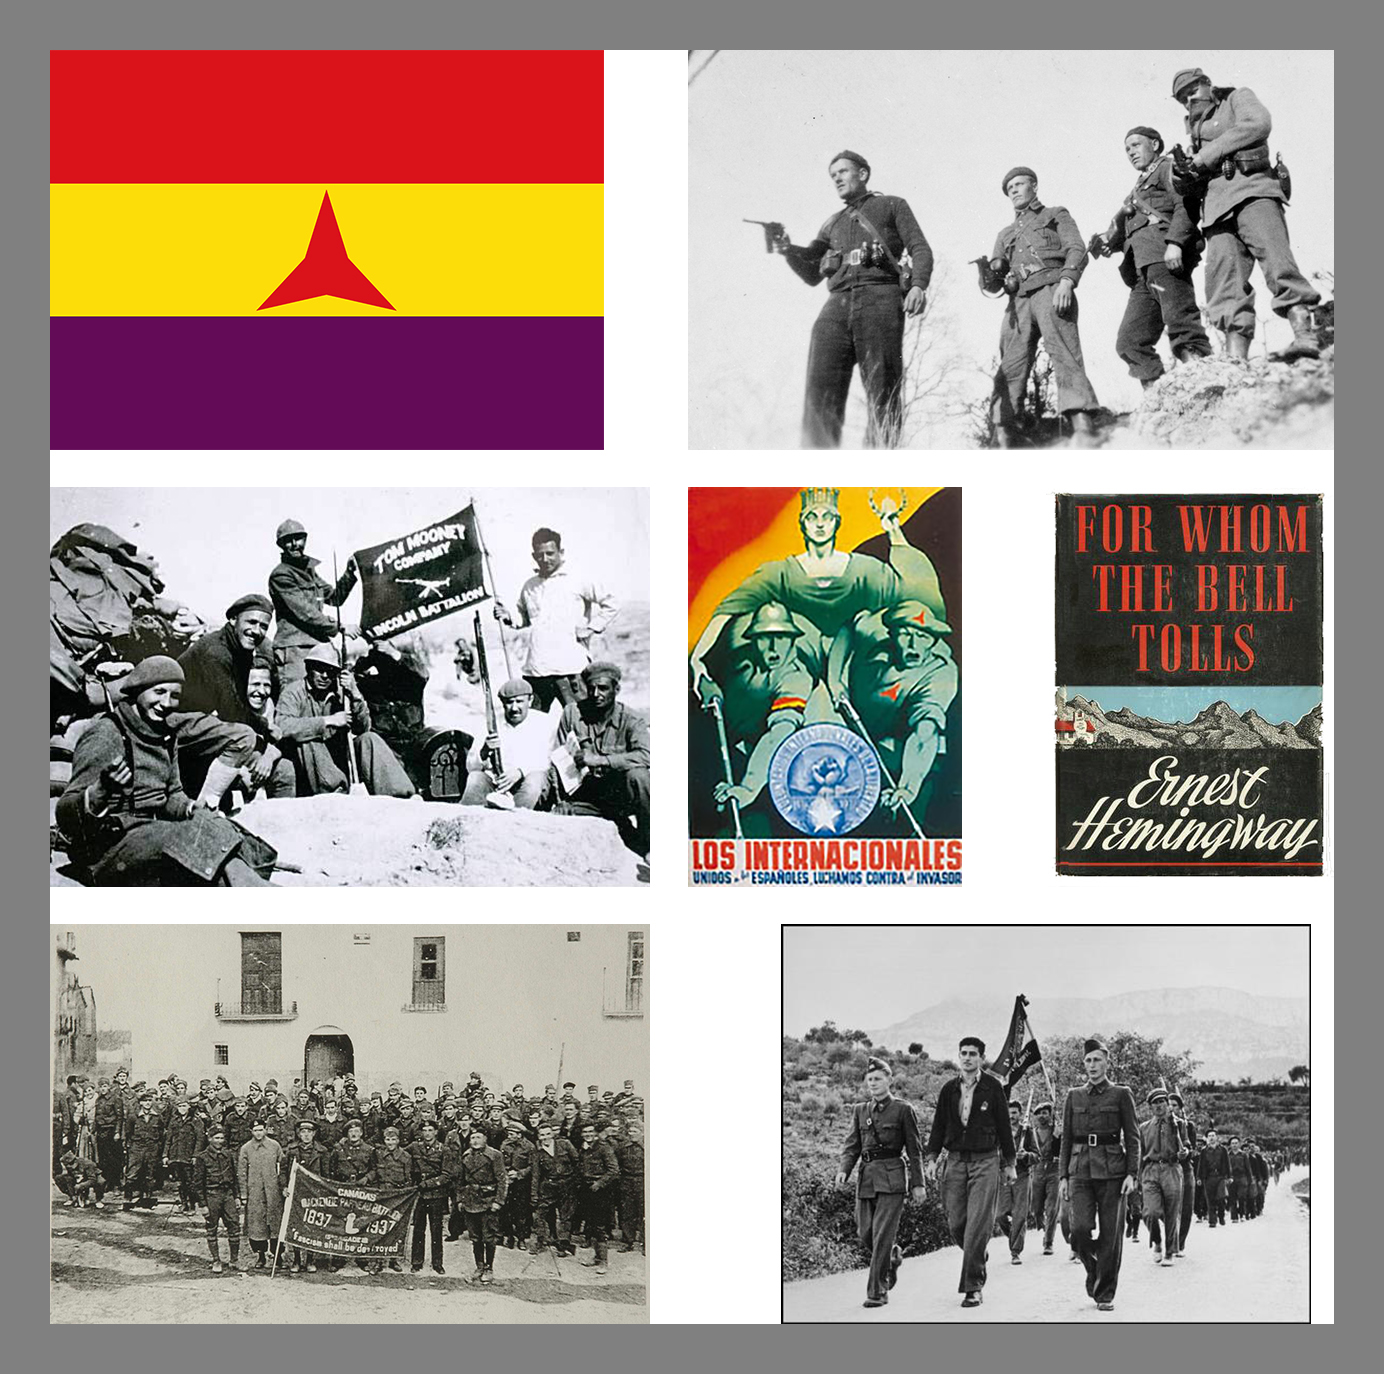 The flag of the International Brigades; Finnish-Canadians from the Mac-Paps; a company of the Abraham Lincoln Brigade; Los Internationales; Hemingway's novel about the Spanish Civil War; the Mackenzie-Papineau Battalion; the Abraham Lincoln Brigade on the march.